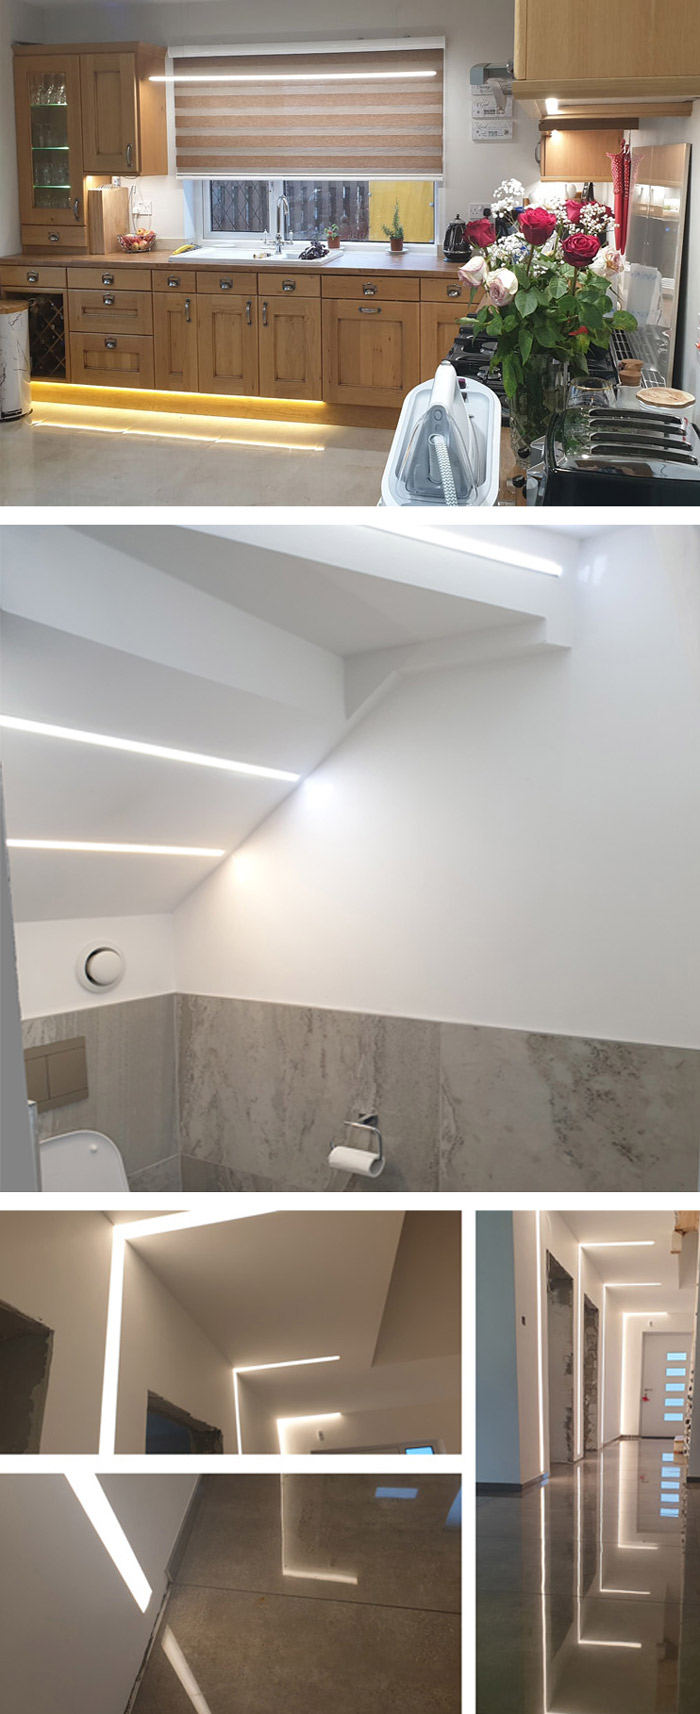 LED Light Projects selector